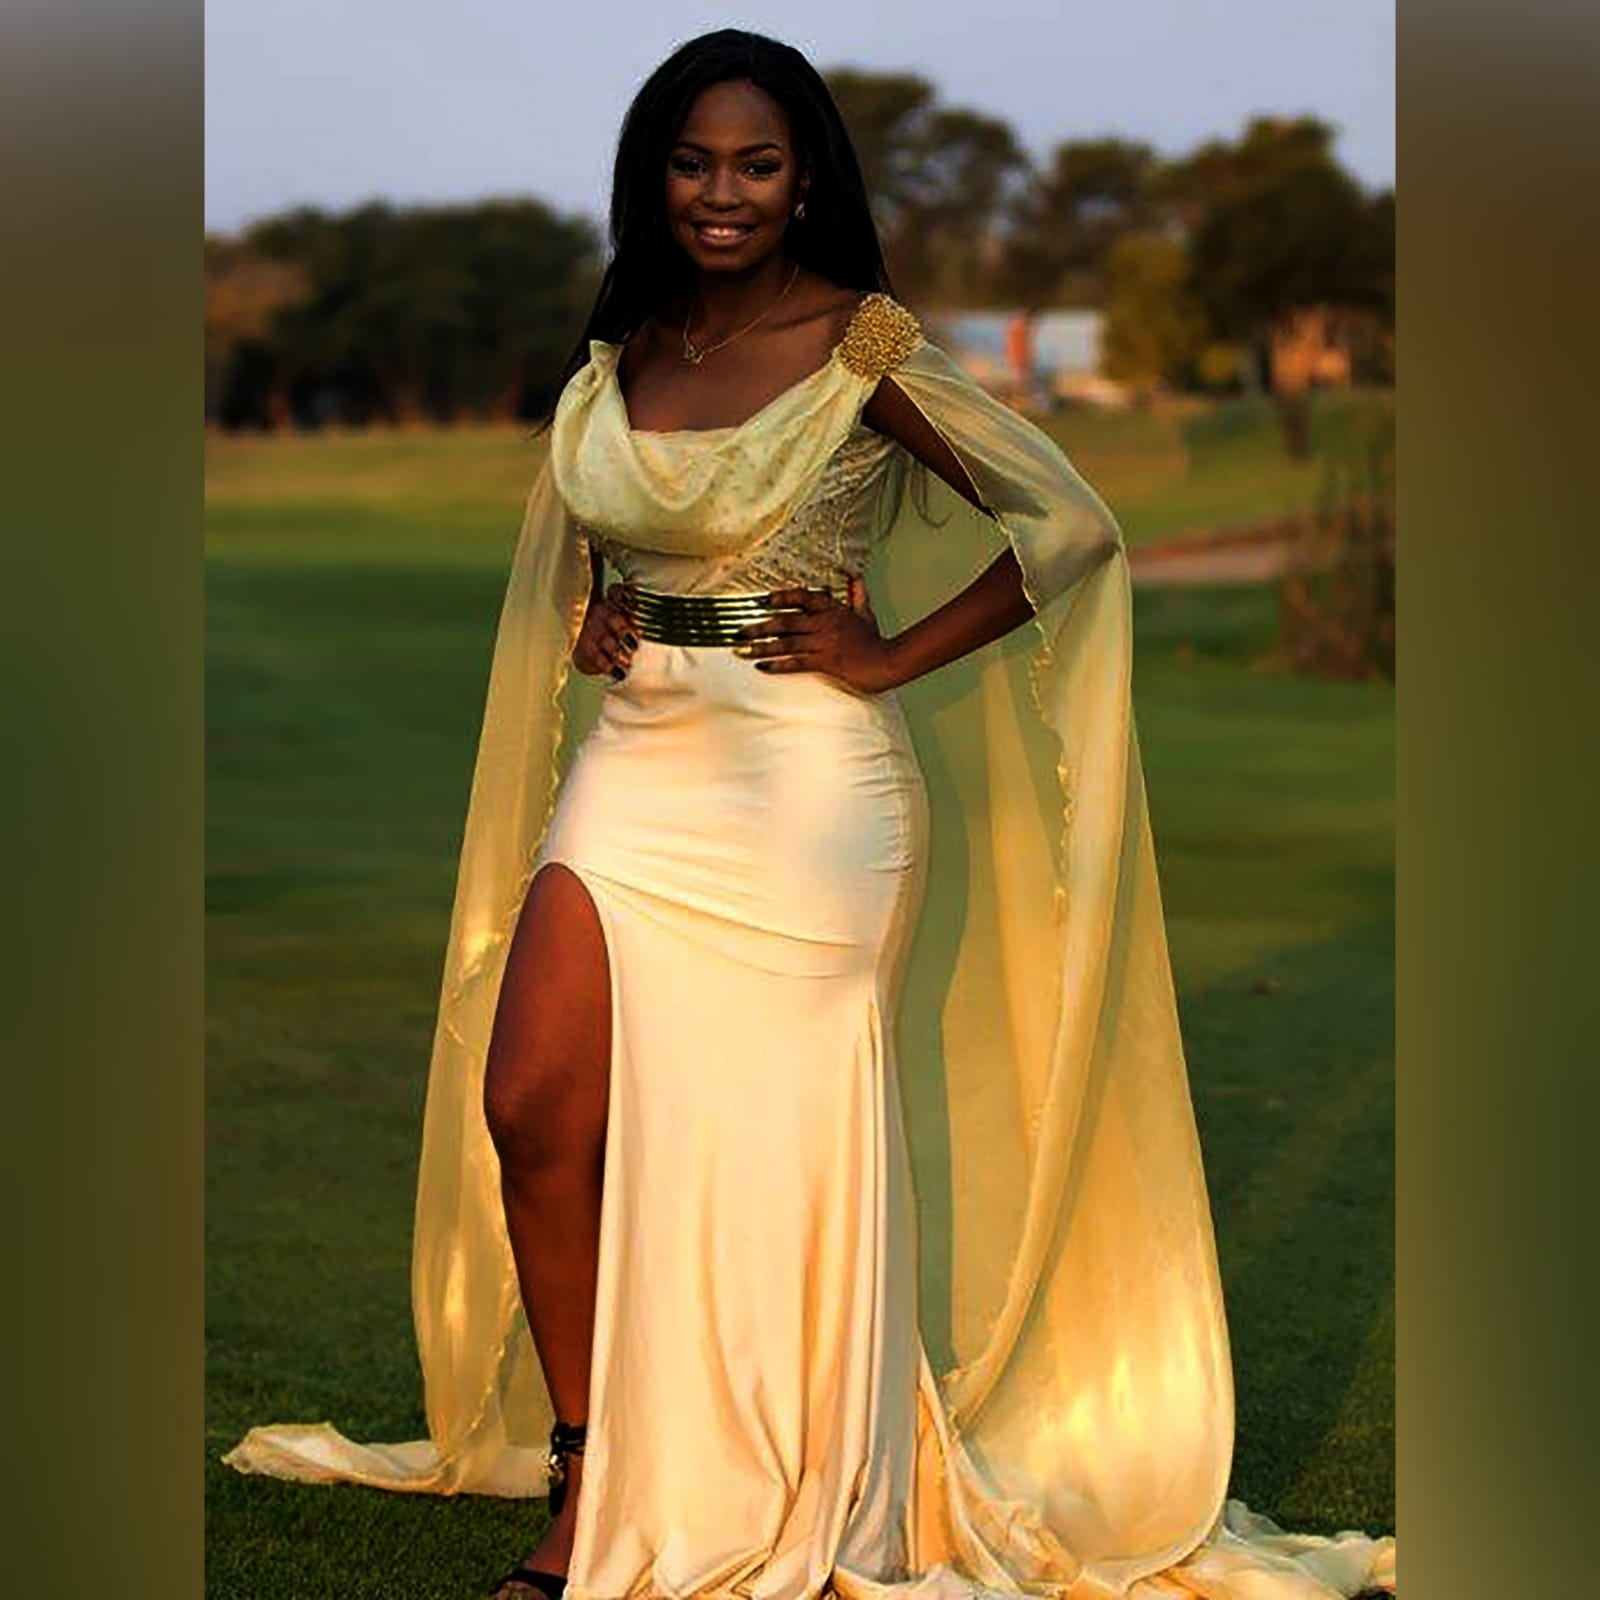 Gold long goddess inspired prom dress 1 gold long goddess inspired prom dress. Long fitted dress with a high slit and a train. With bust detailed with gold beads and a chiffon cowl neck, with a dramatic chiffon cape beaded on the shoulders. With a long train.